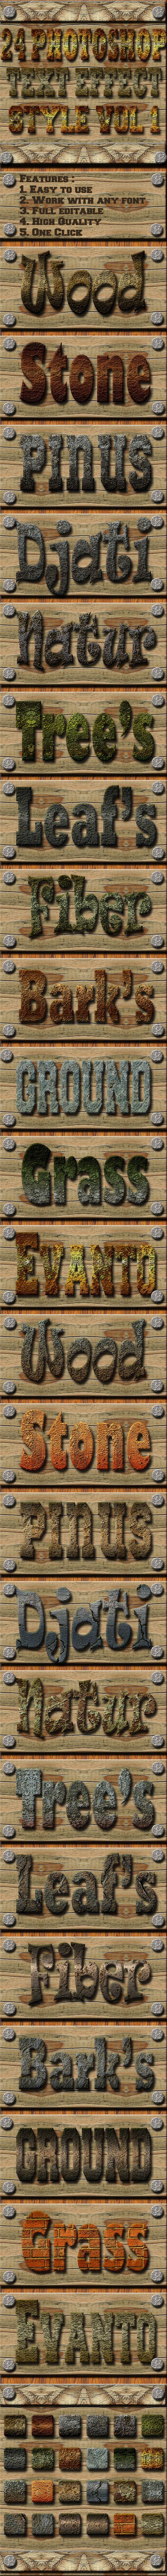 24 Photoshop Text Effect Style Vol 1 - Styles Photoshop